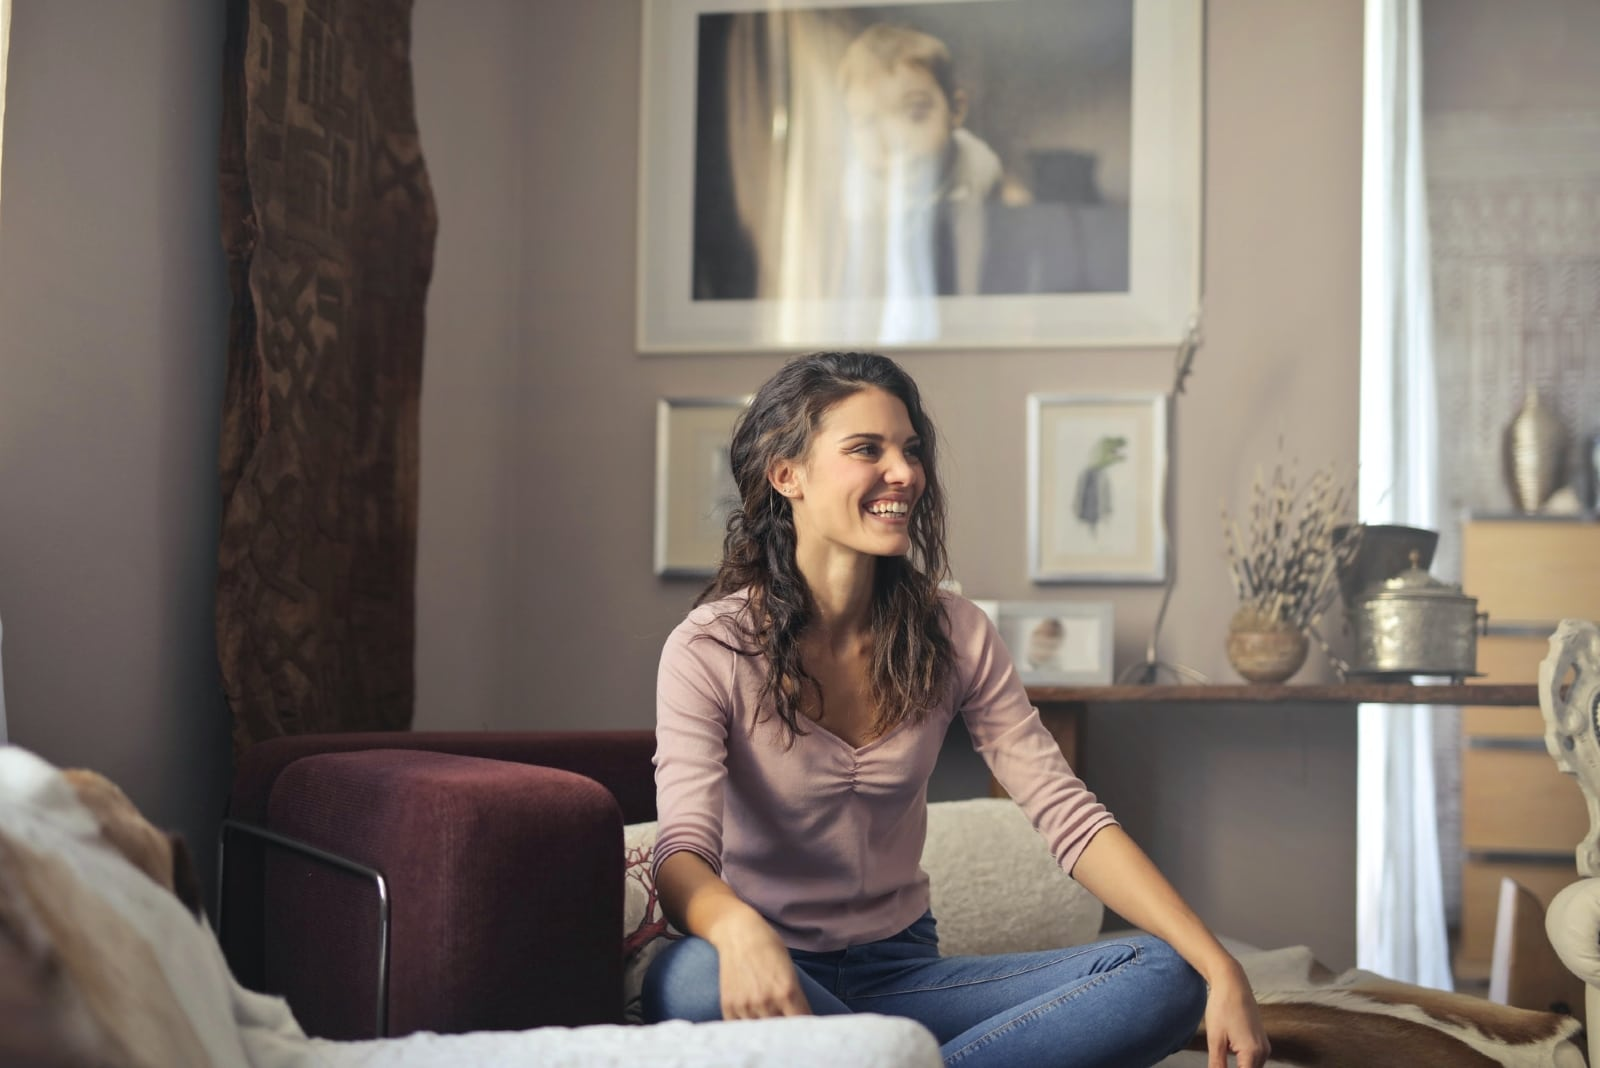 woman in pink shirt smiling while sitting indoor